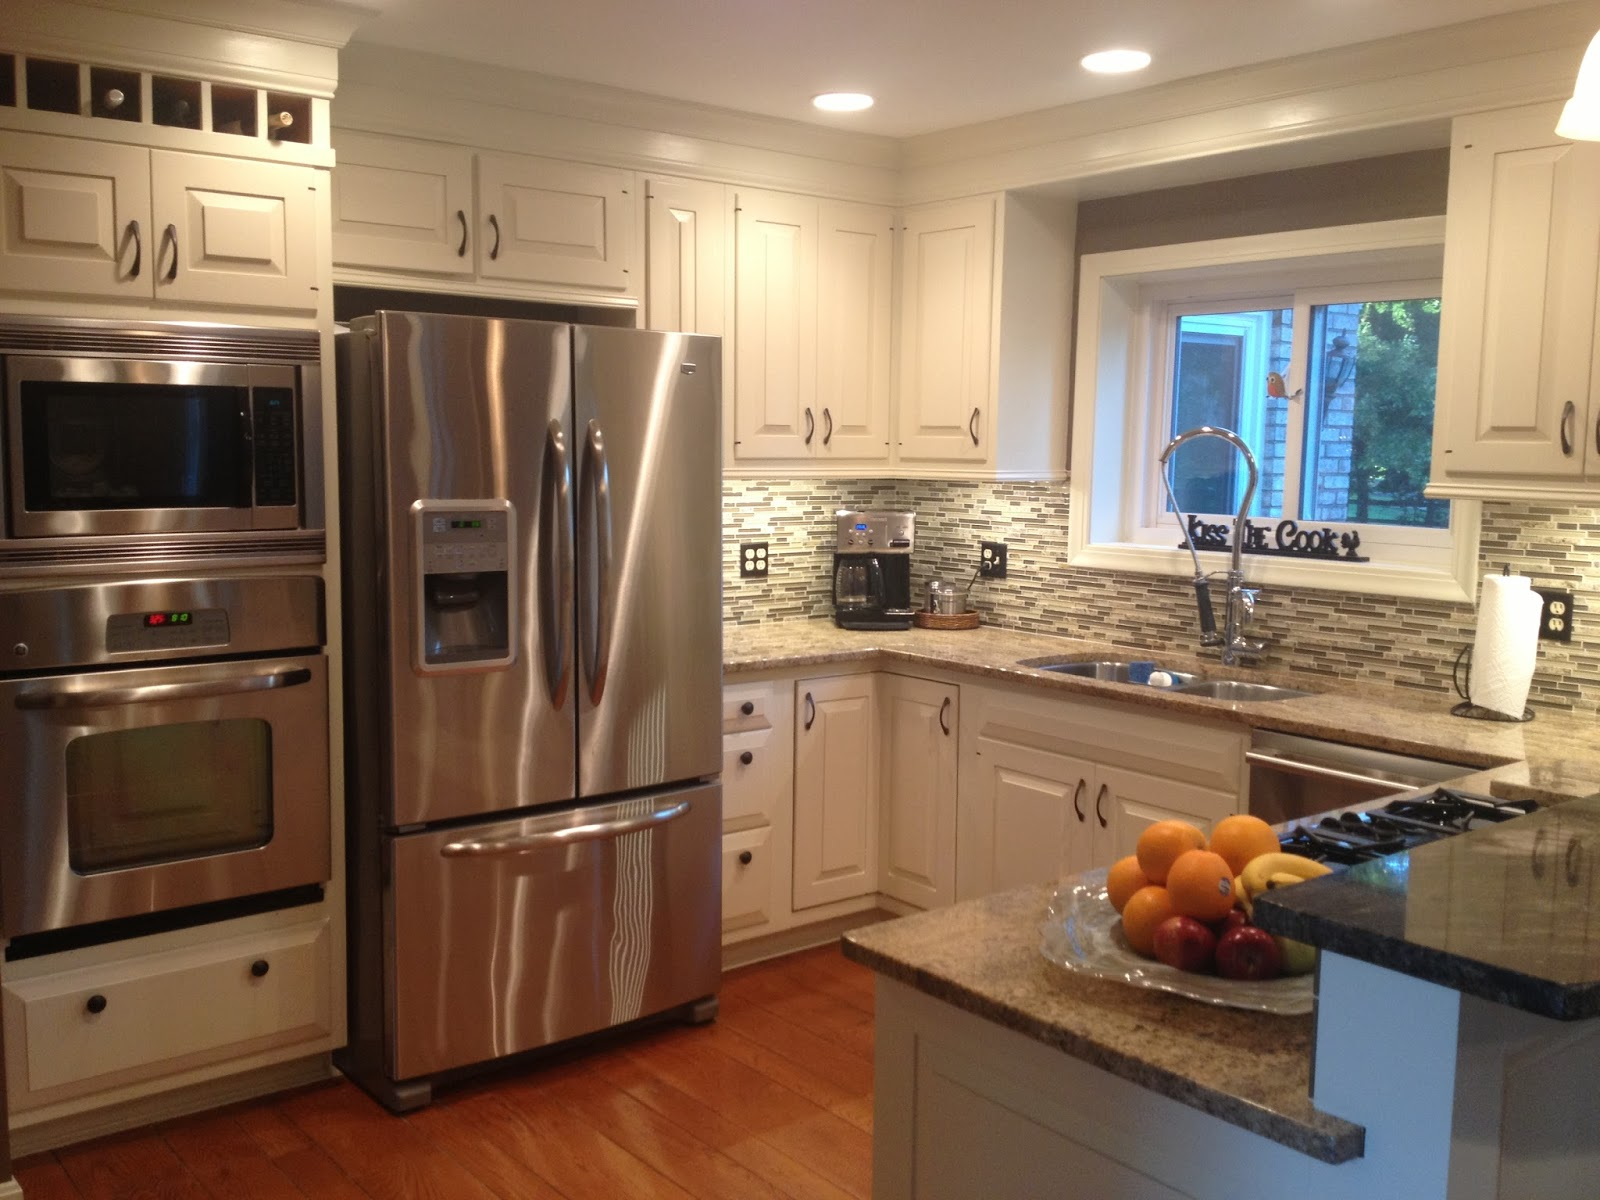 Four seasons style the new kitchen remodel on a budget for Budget kitchen cabinet ideas